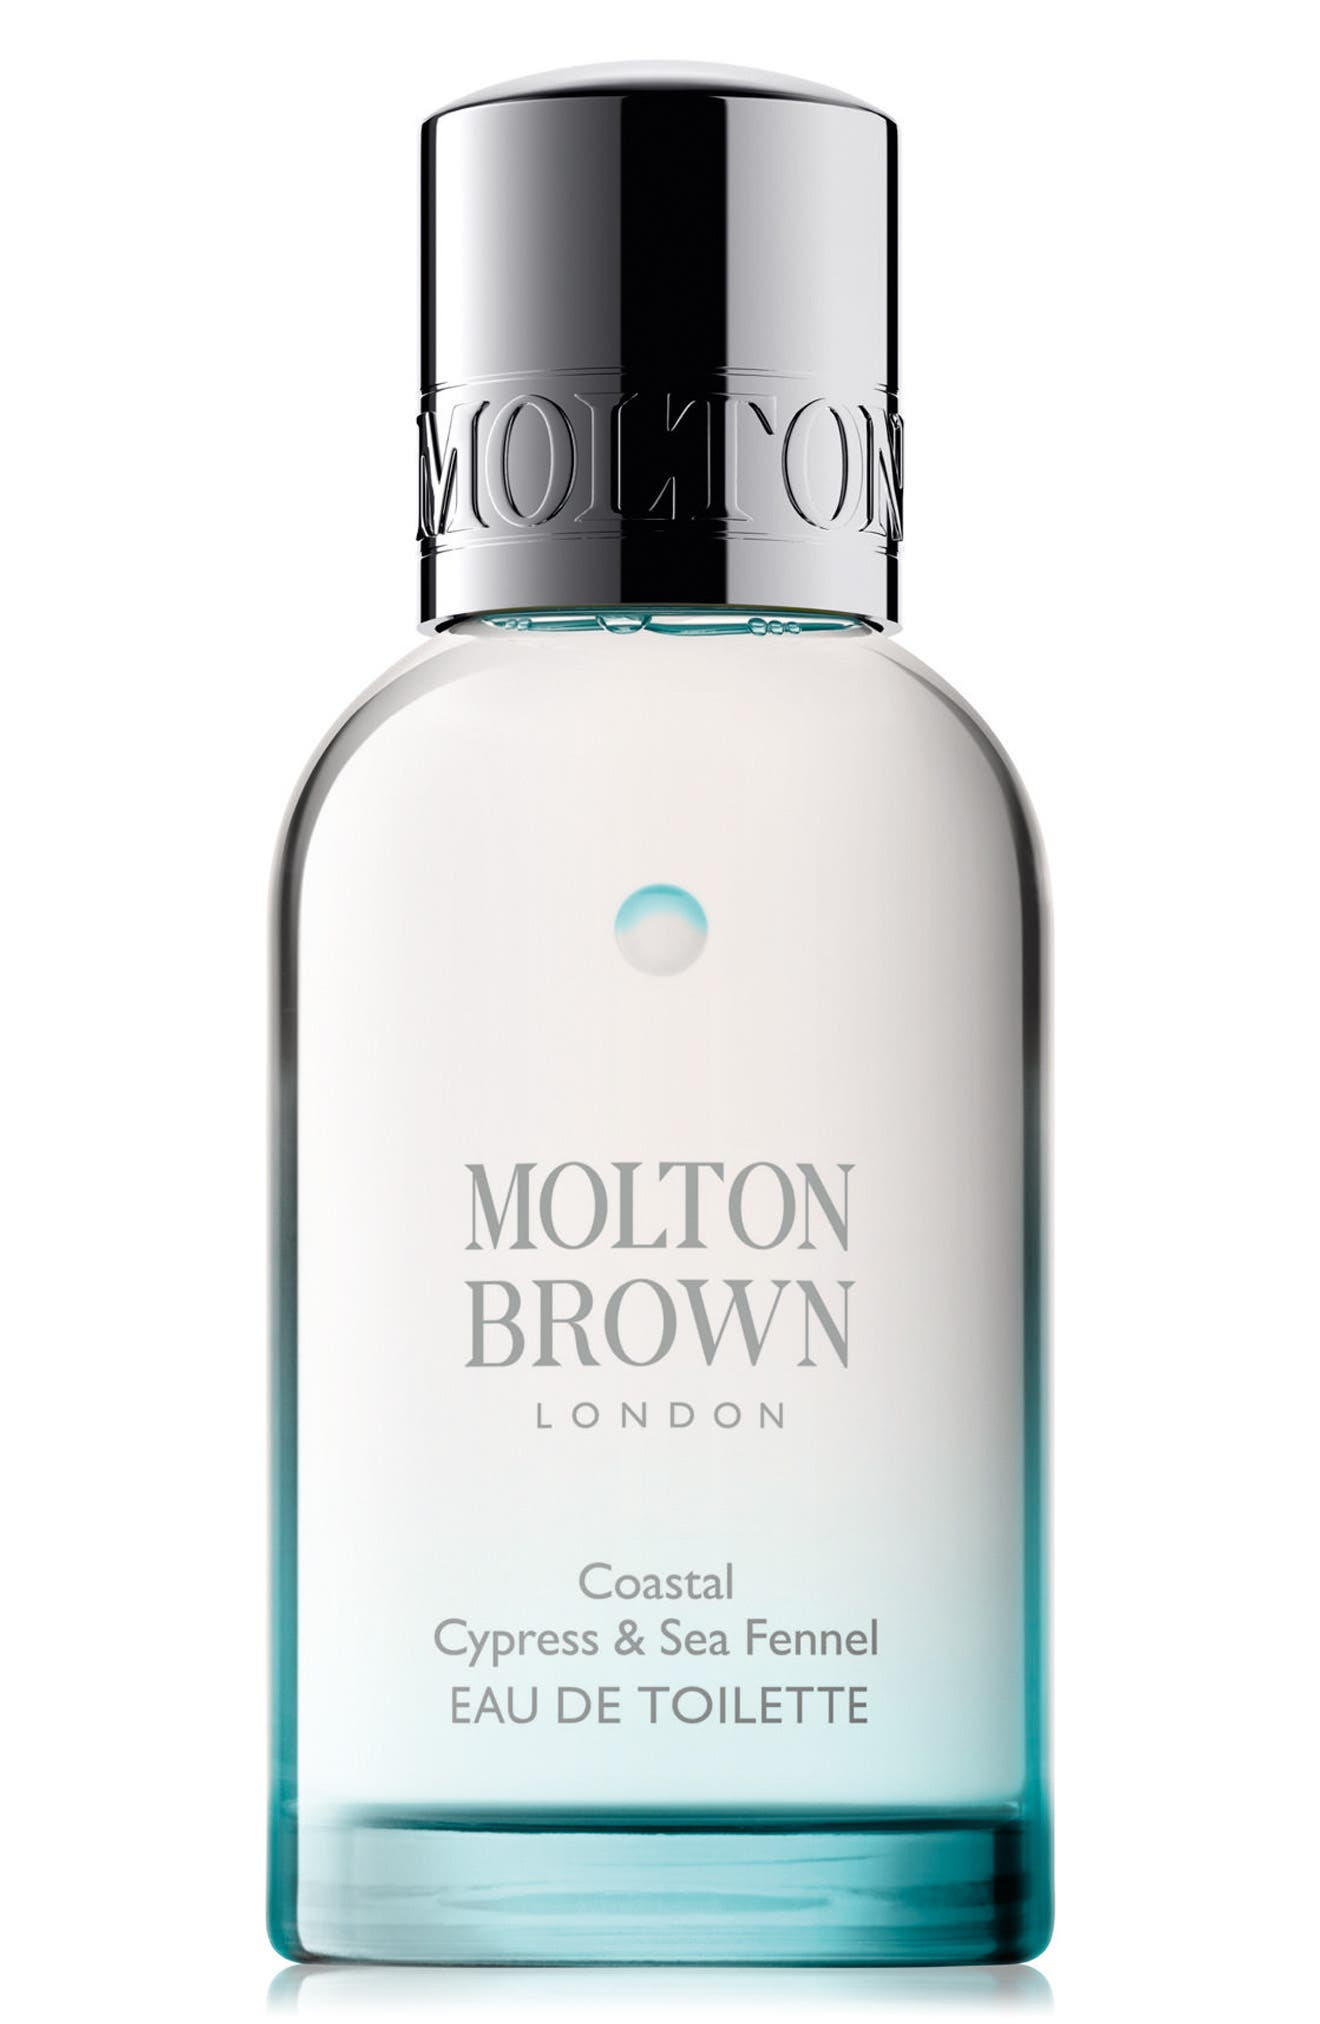 MOLTON BROWN London Coastal Cypress & Sea Fennel Eau de Toilette